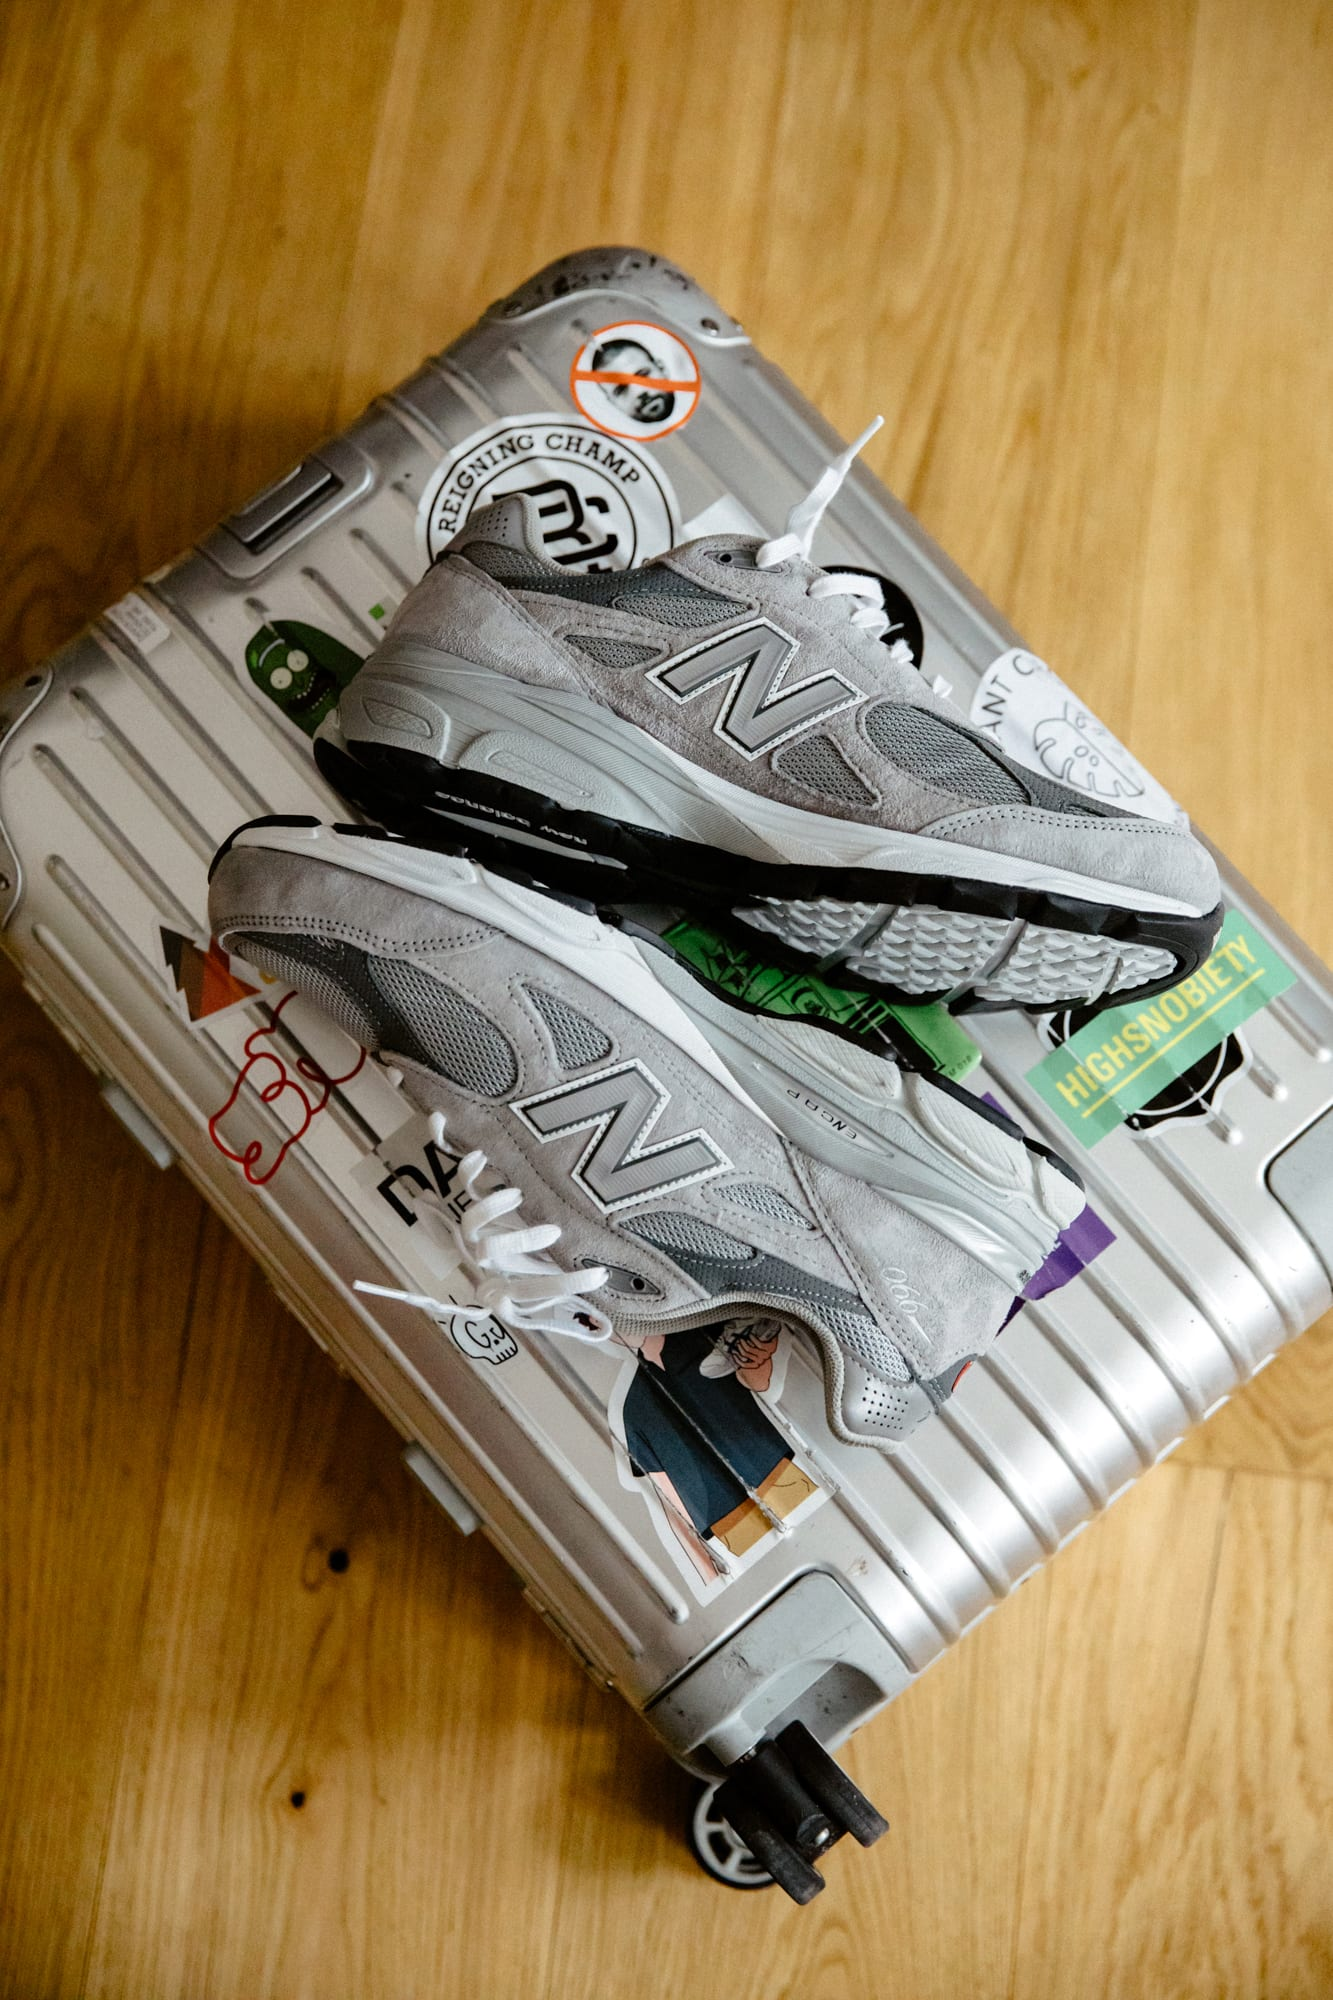 New Balance 990v3 - Flight Case Sneakers: Chris Danforth